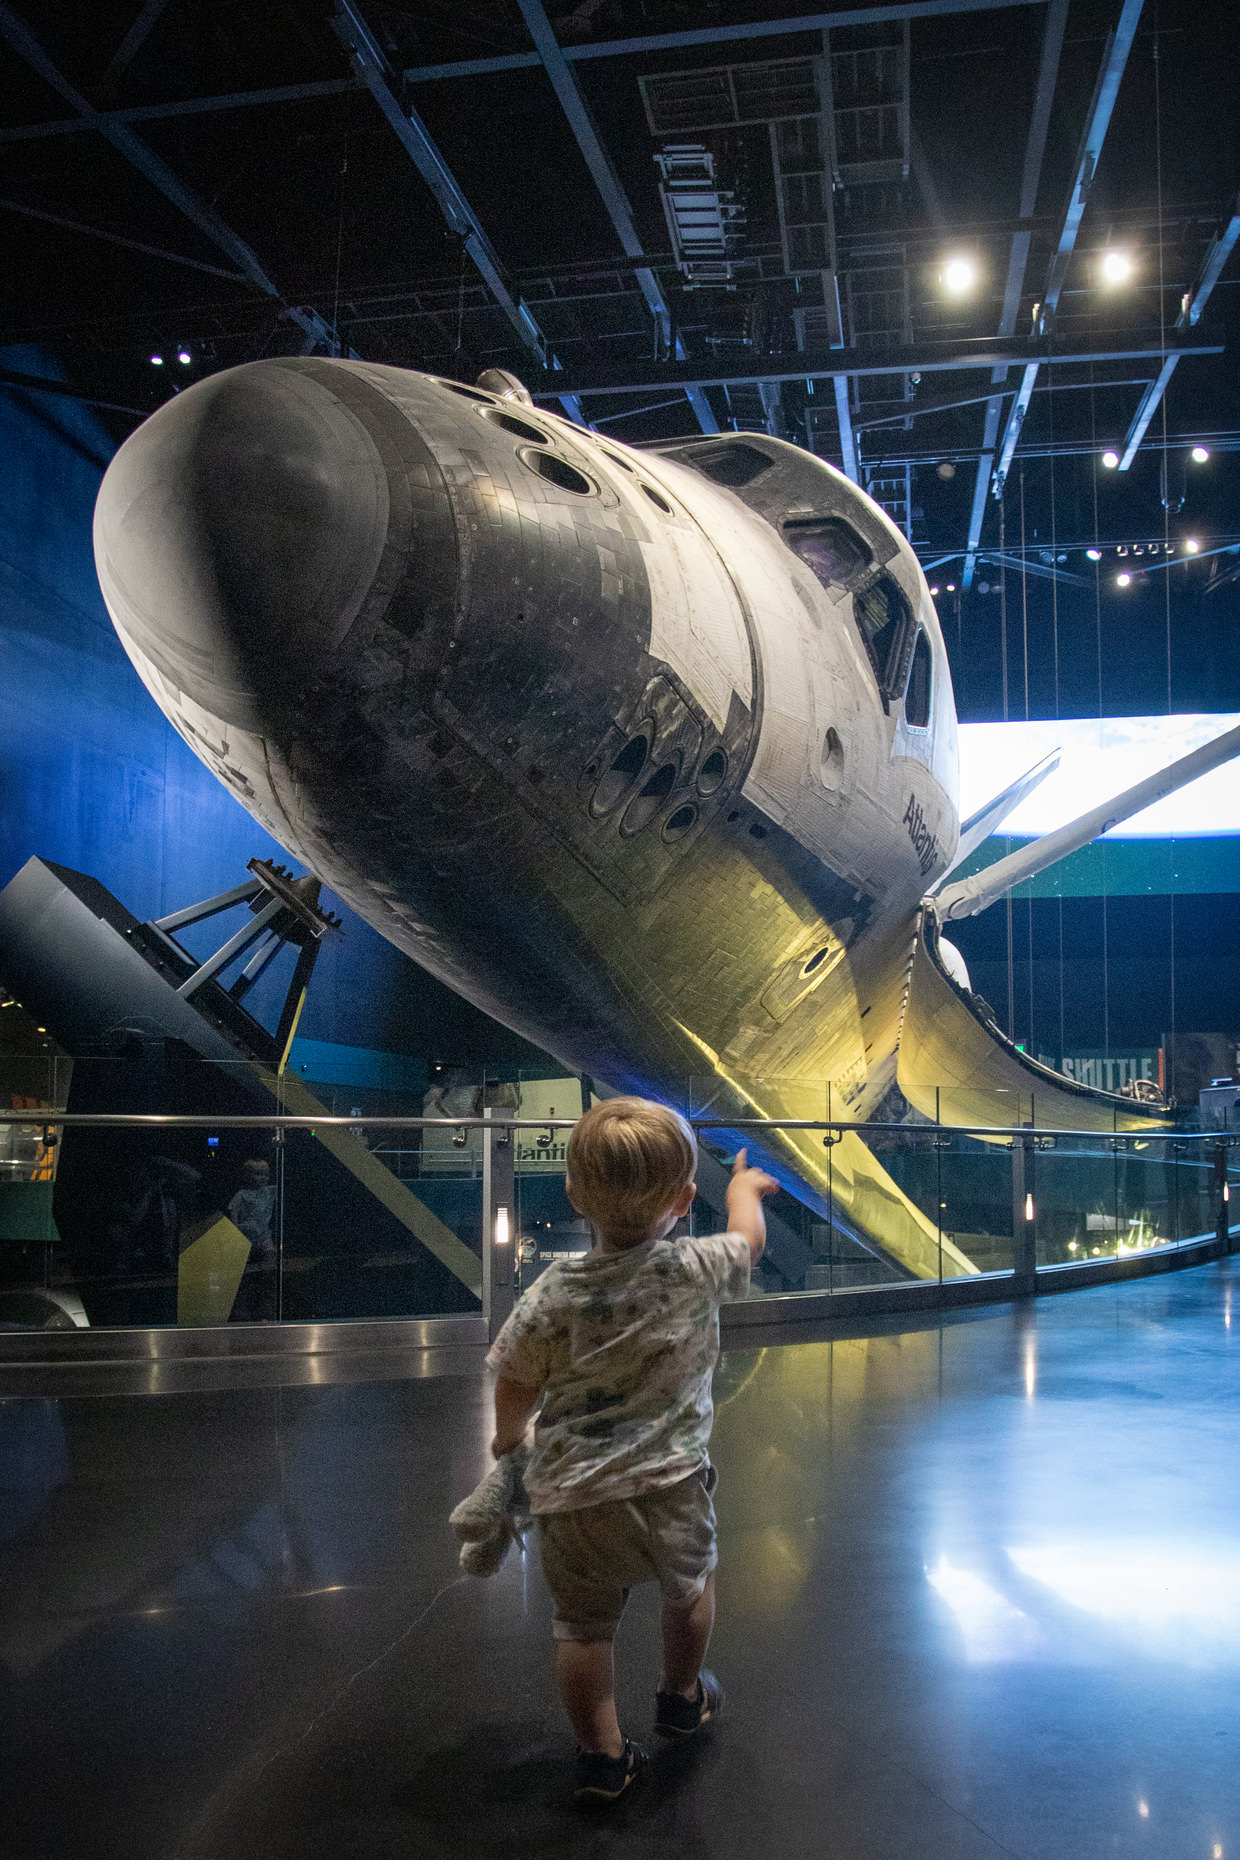 Conway, teddy bear in hand, seeing Space Shuttle Atlantis